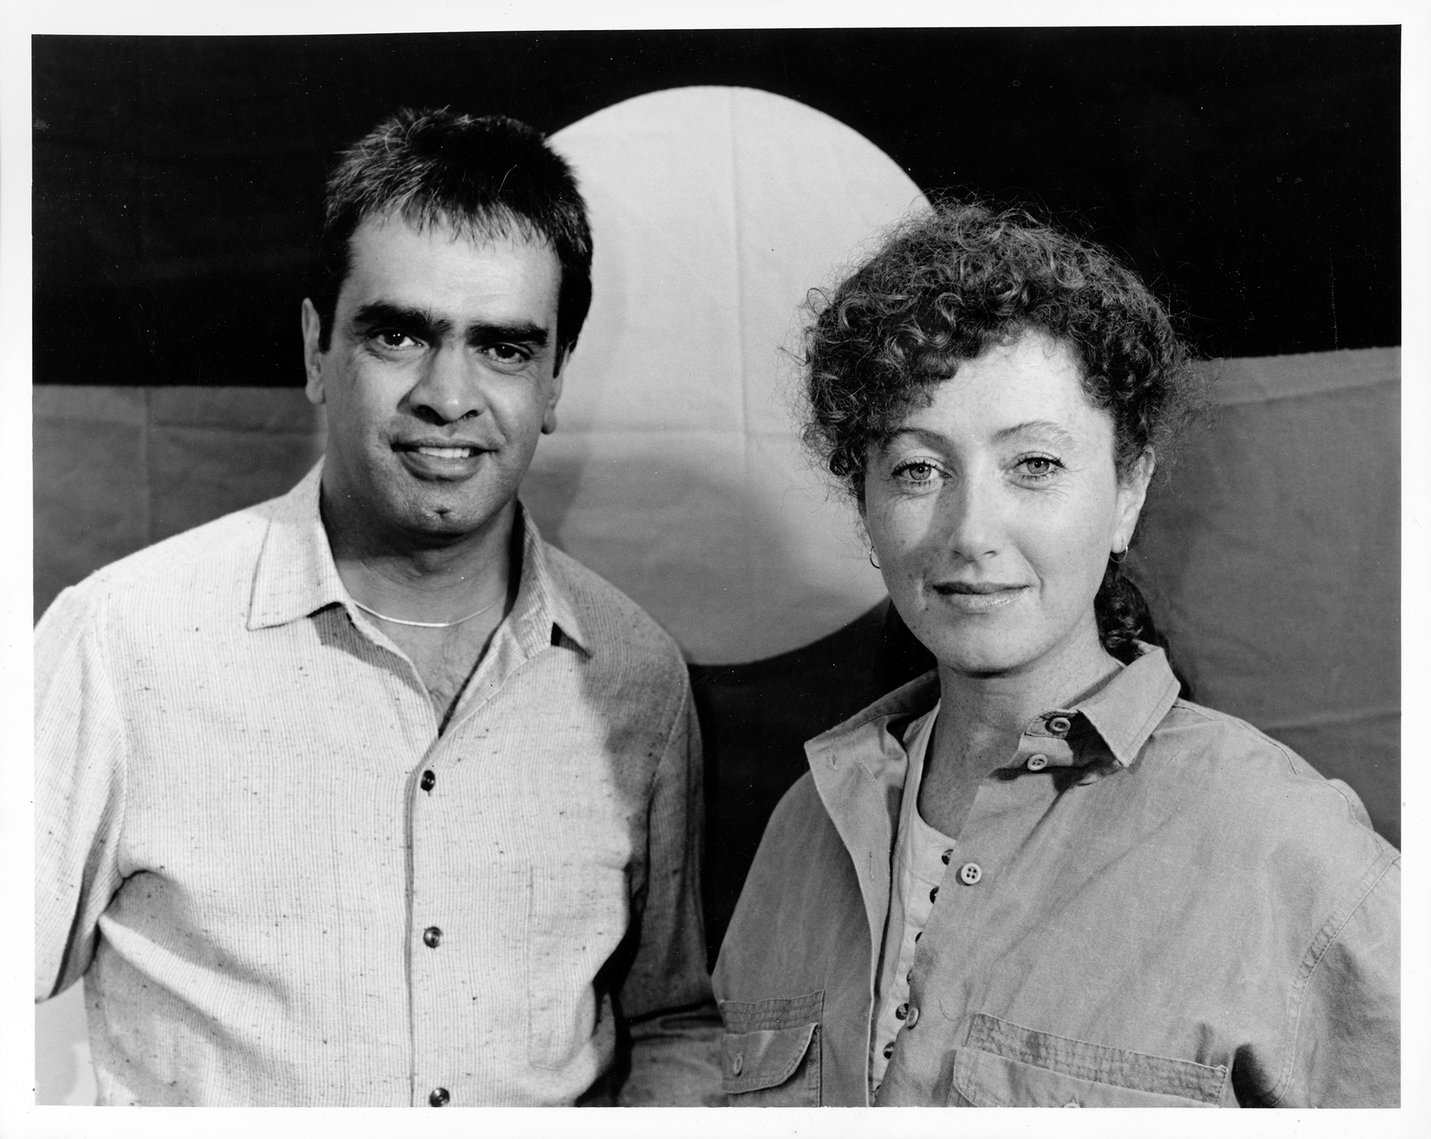 Gary Foley and Di Smith on the set of A Country Practice, Sydney